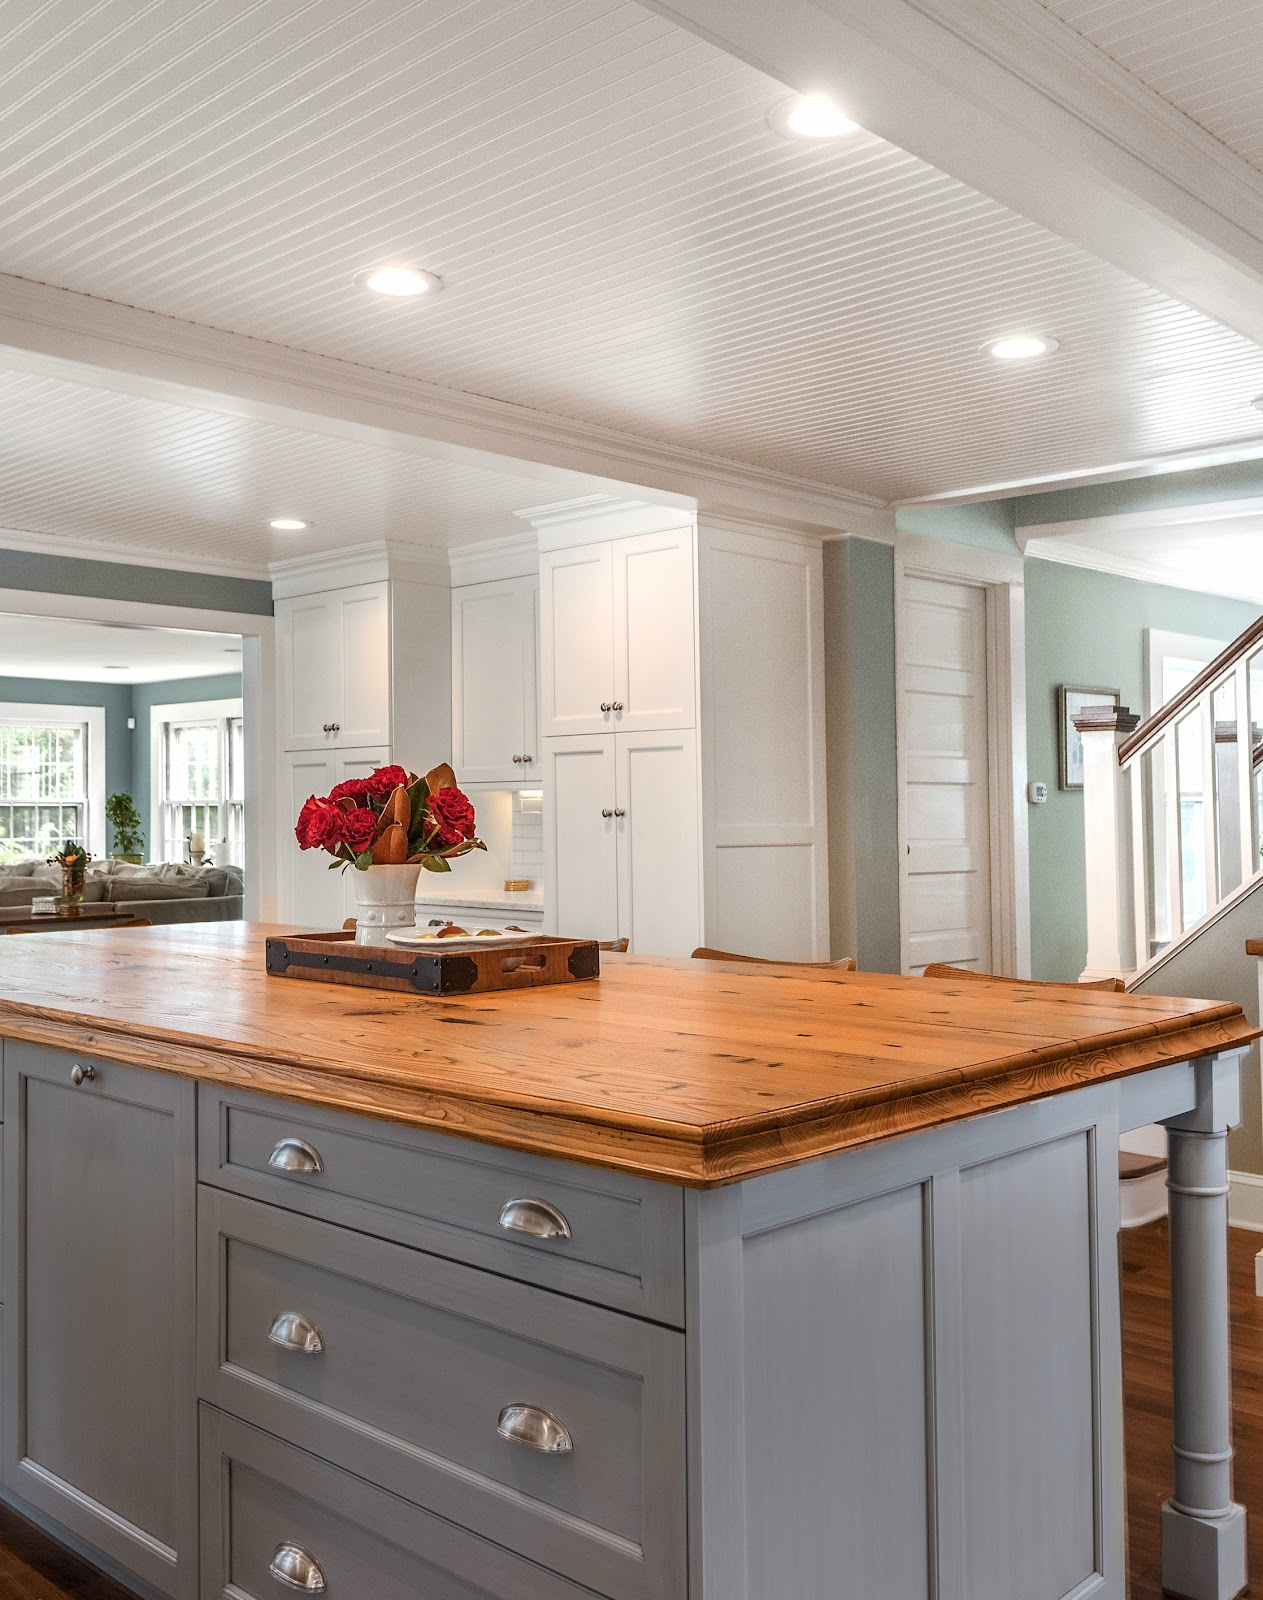 Kitchen Lighting Design Styles Tips And Trends The Kitchen Company - What's new in kitchen lighting